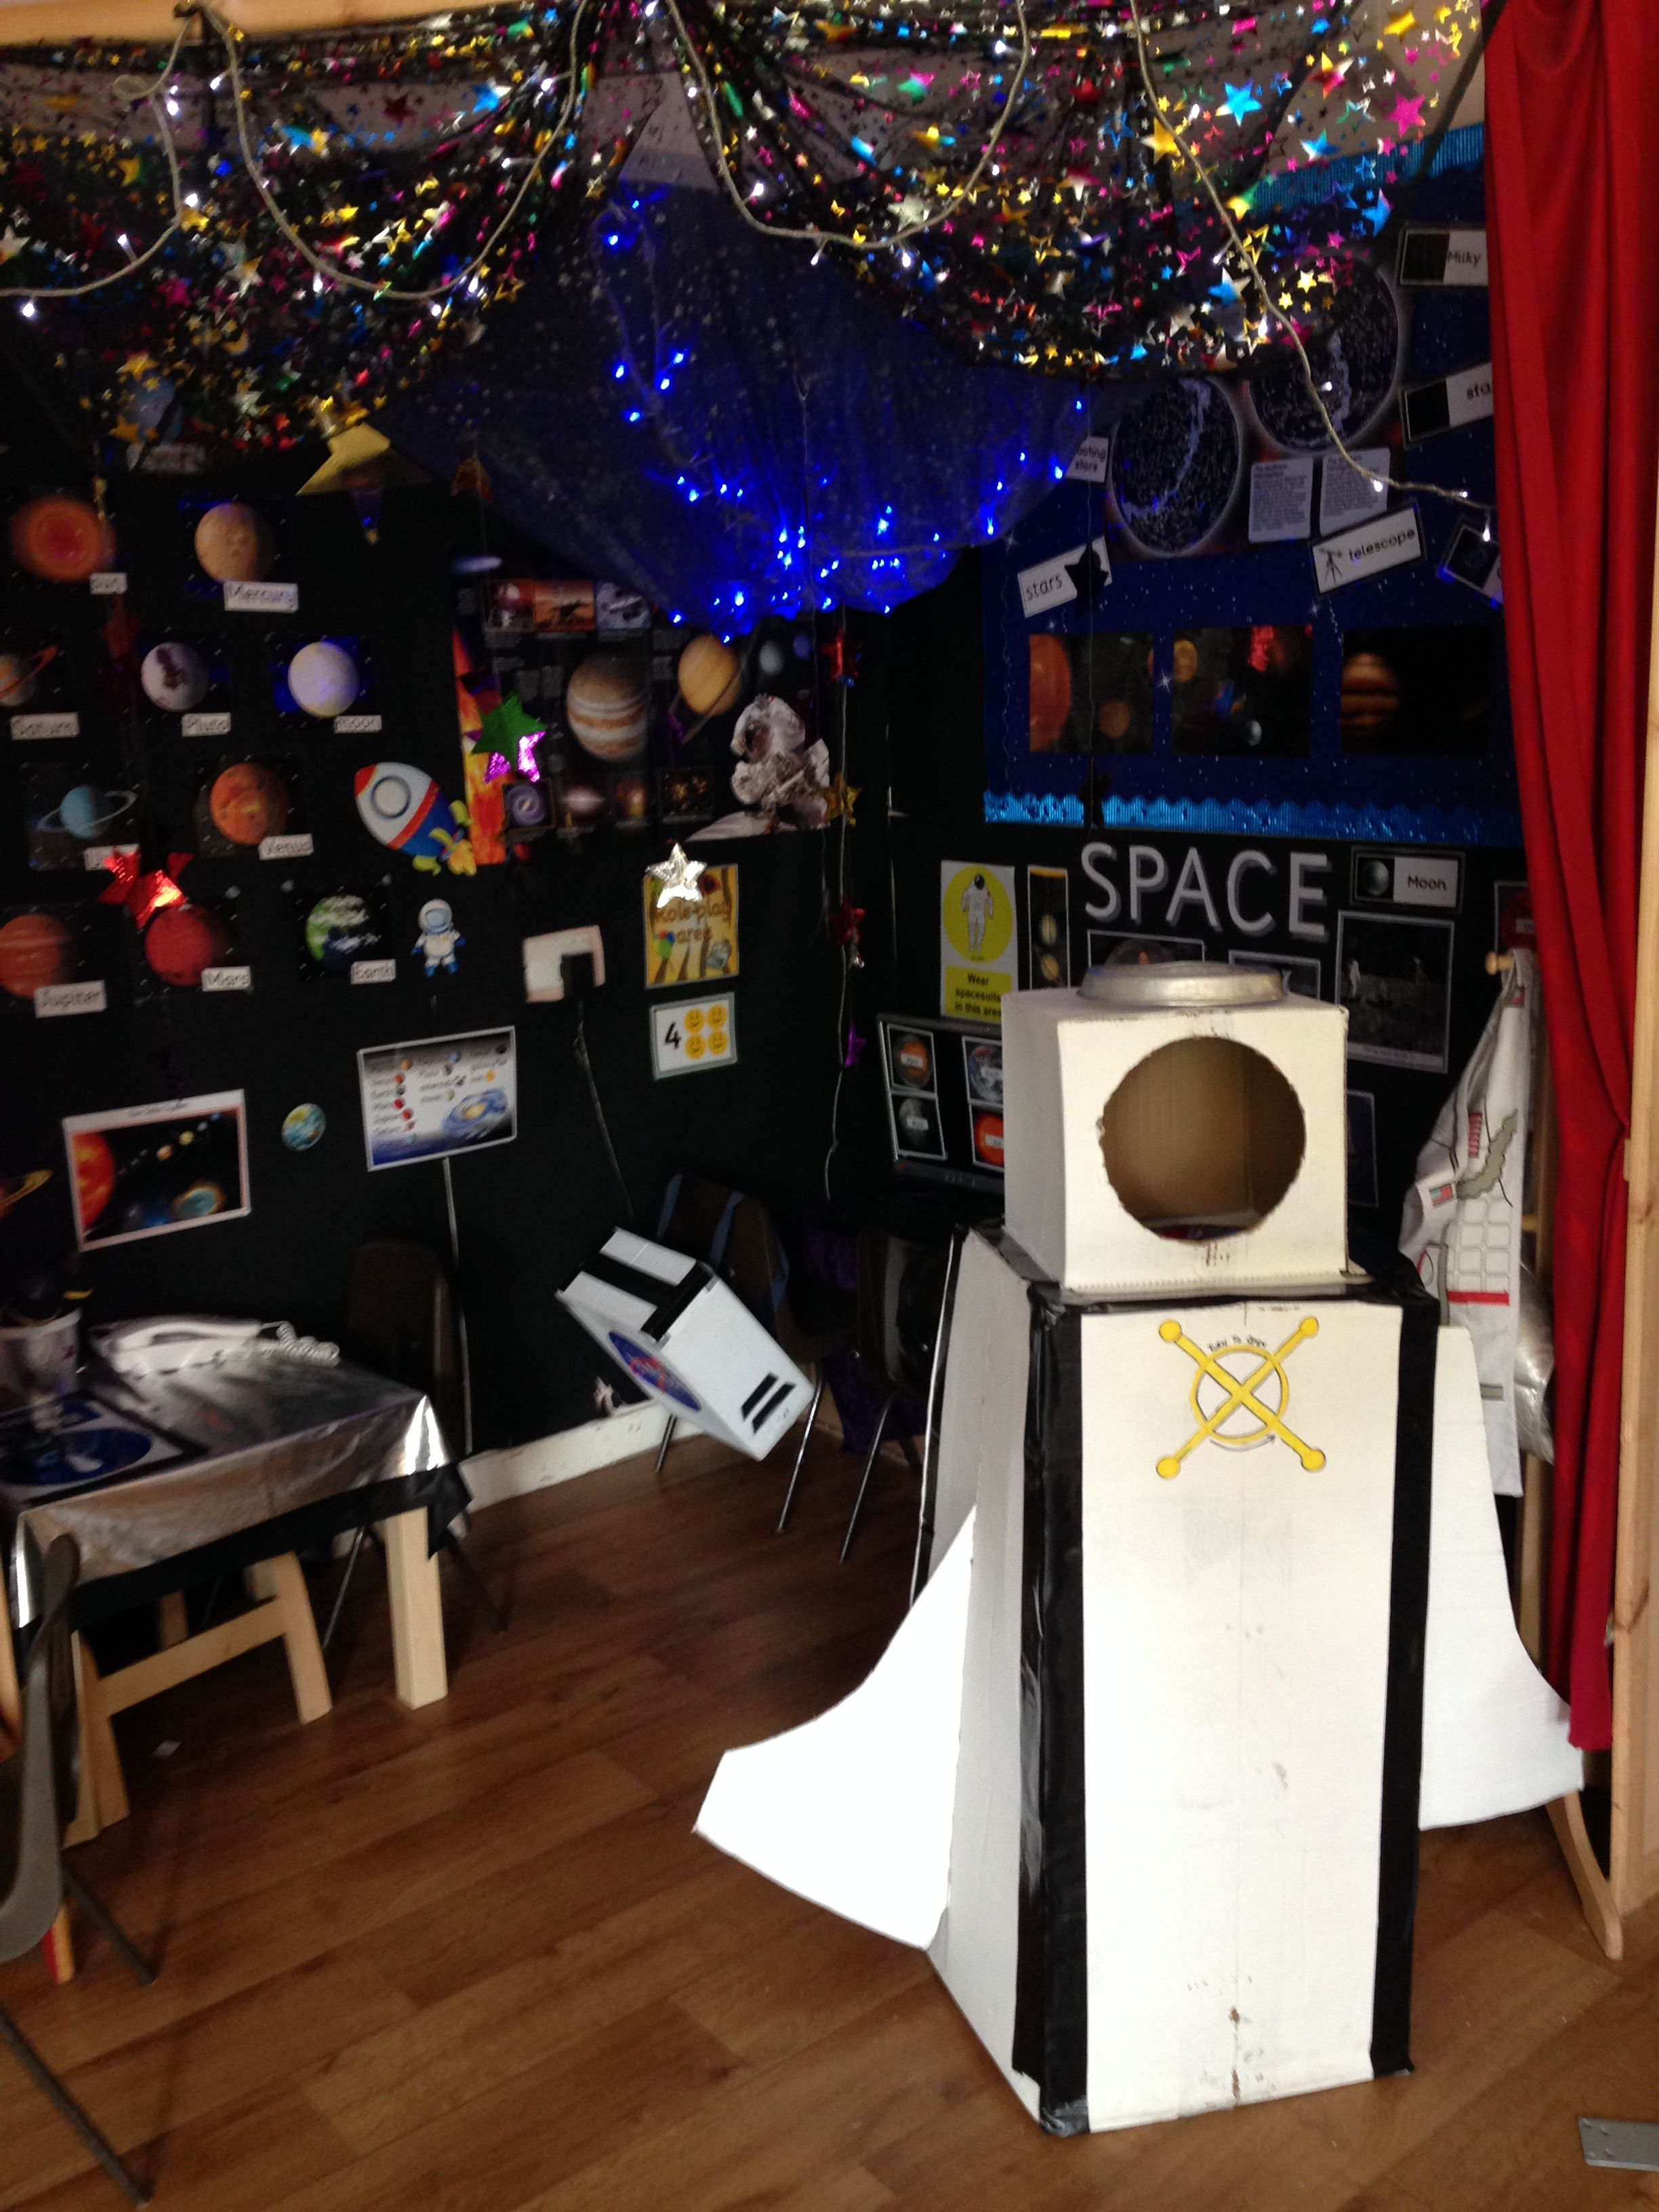 Space station rocket role play area in reception space theme classroom space theme preschool